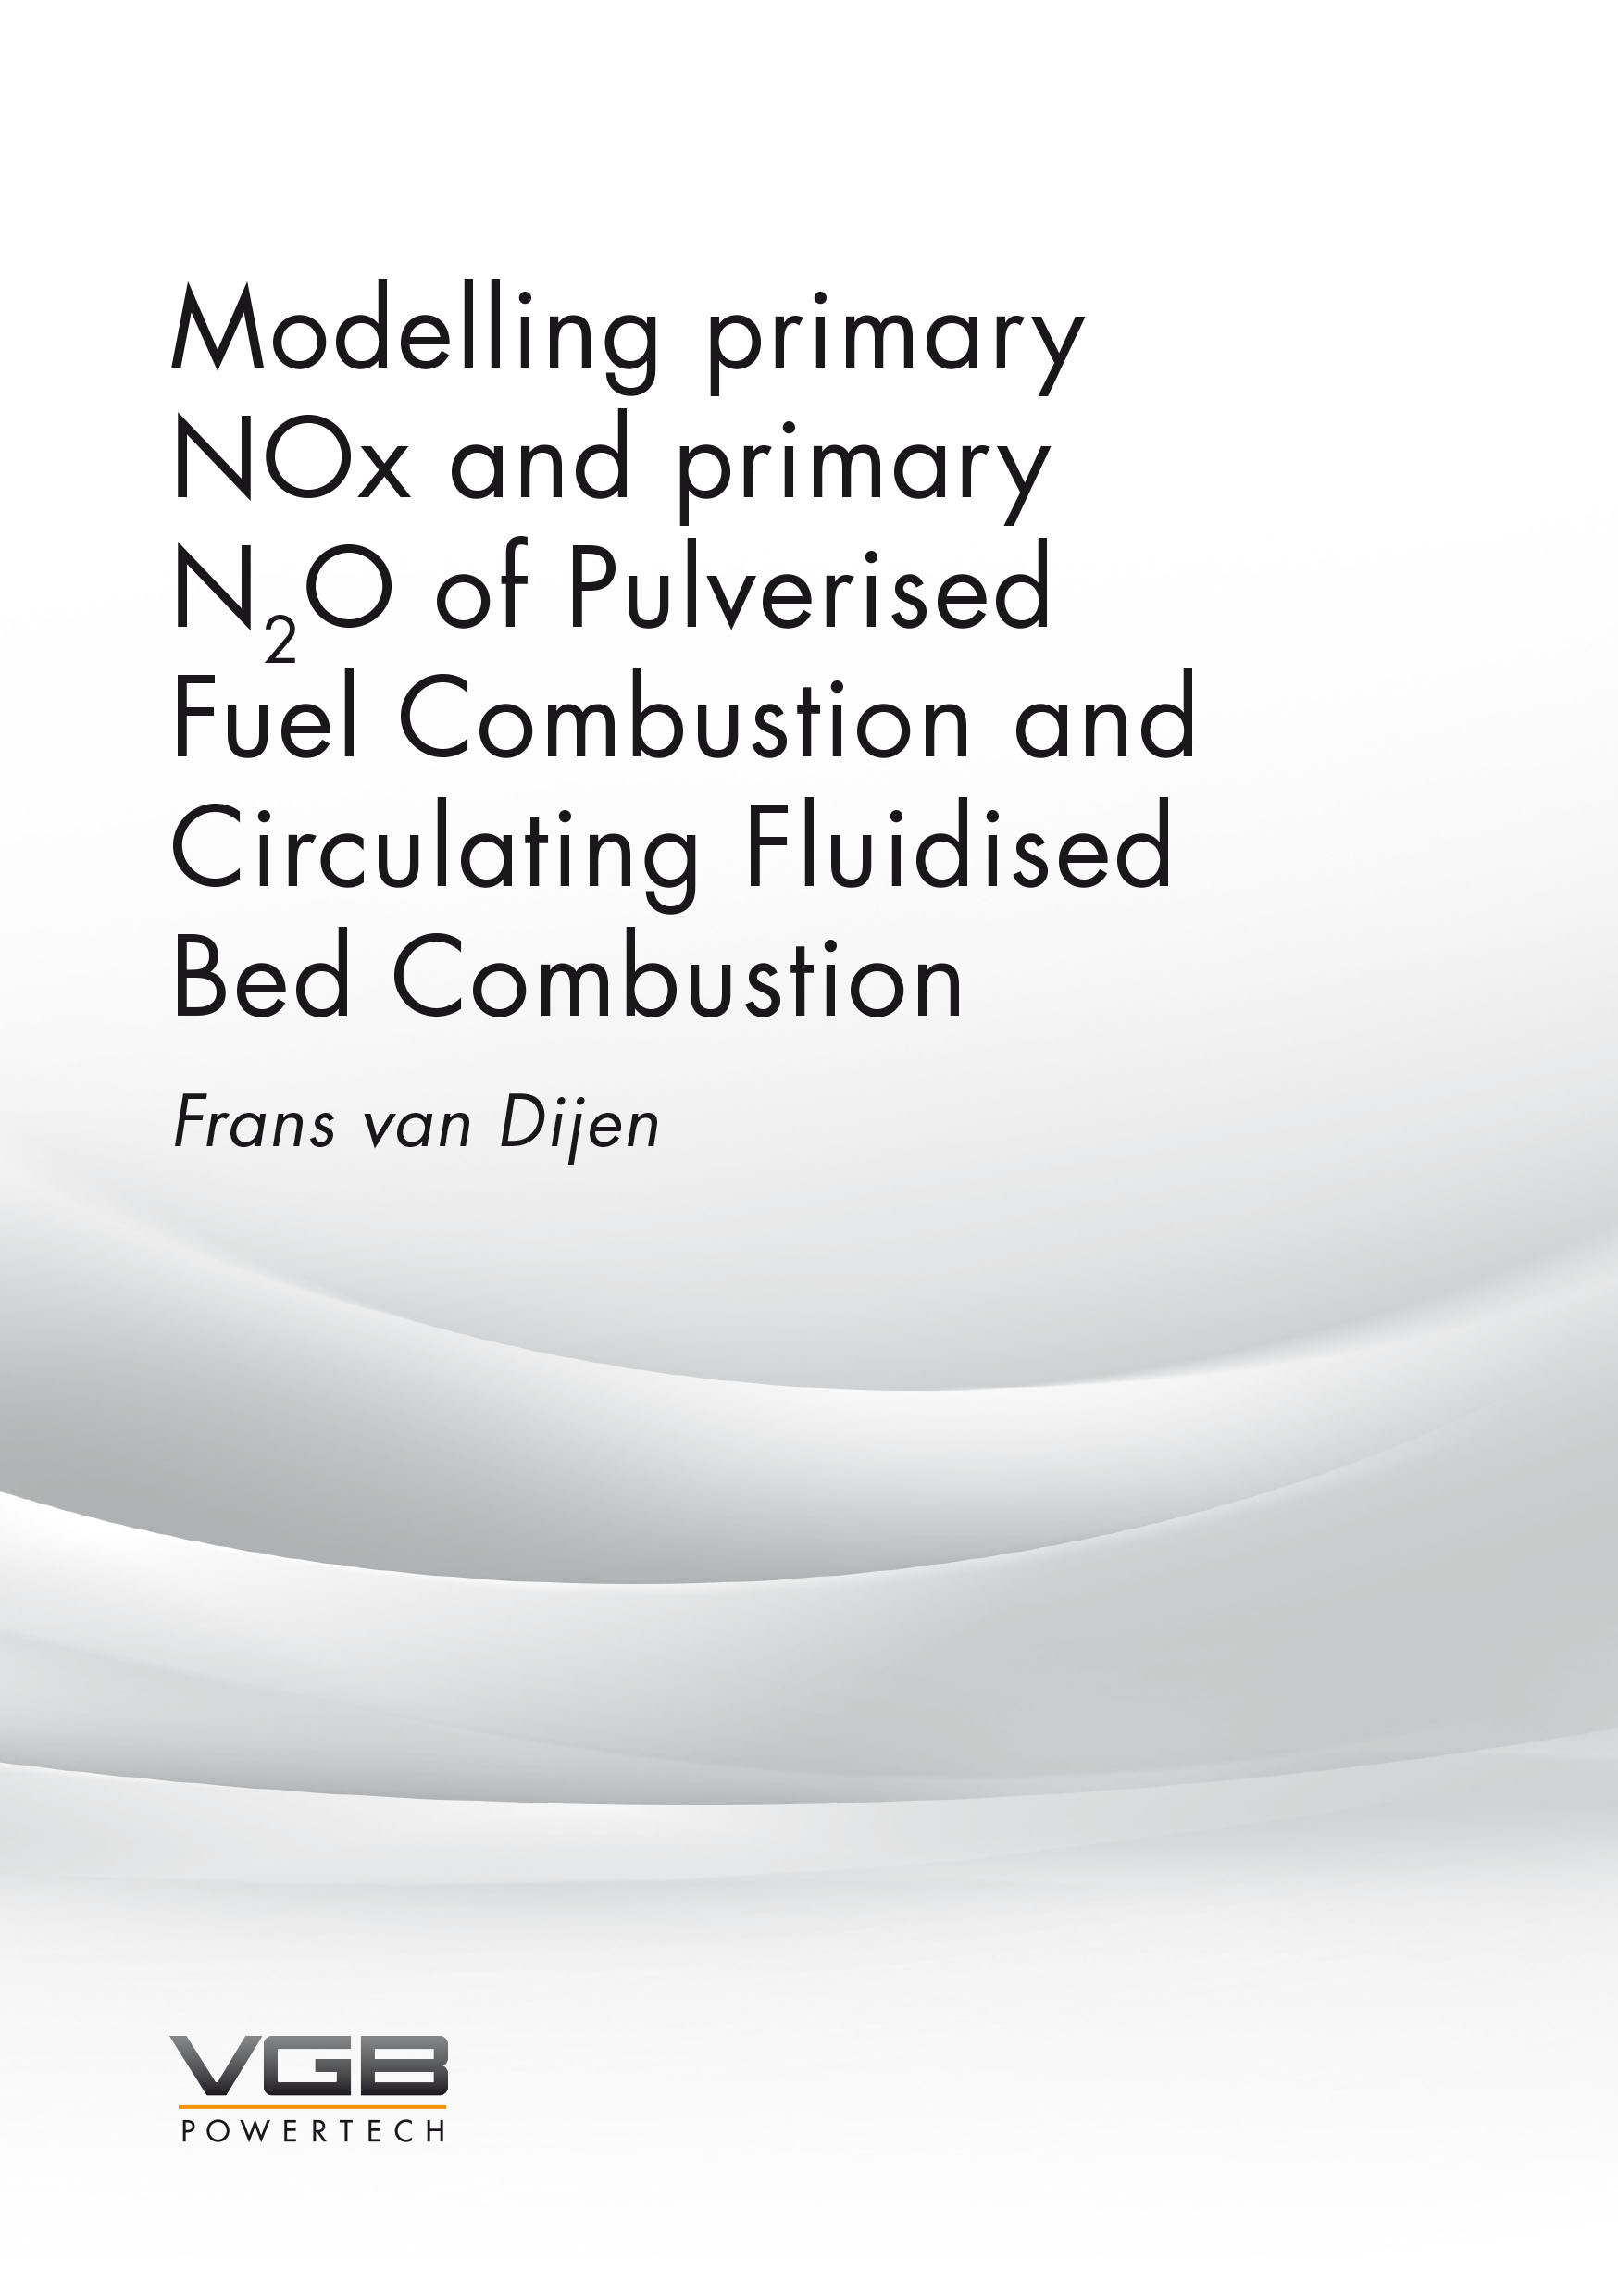 Modelling primary NOx and primary N2O of Pulverised, Fuel Combustion and Circulating Fluidised Bed Combustion (Frans van Dijen)